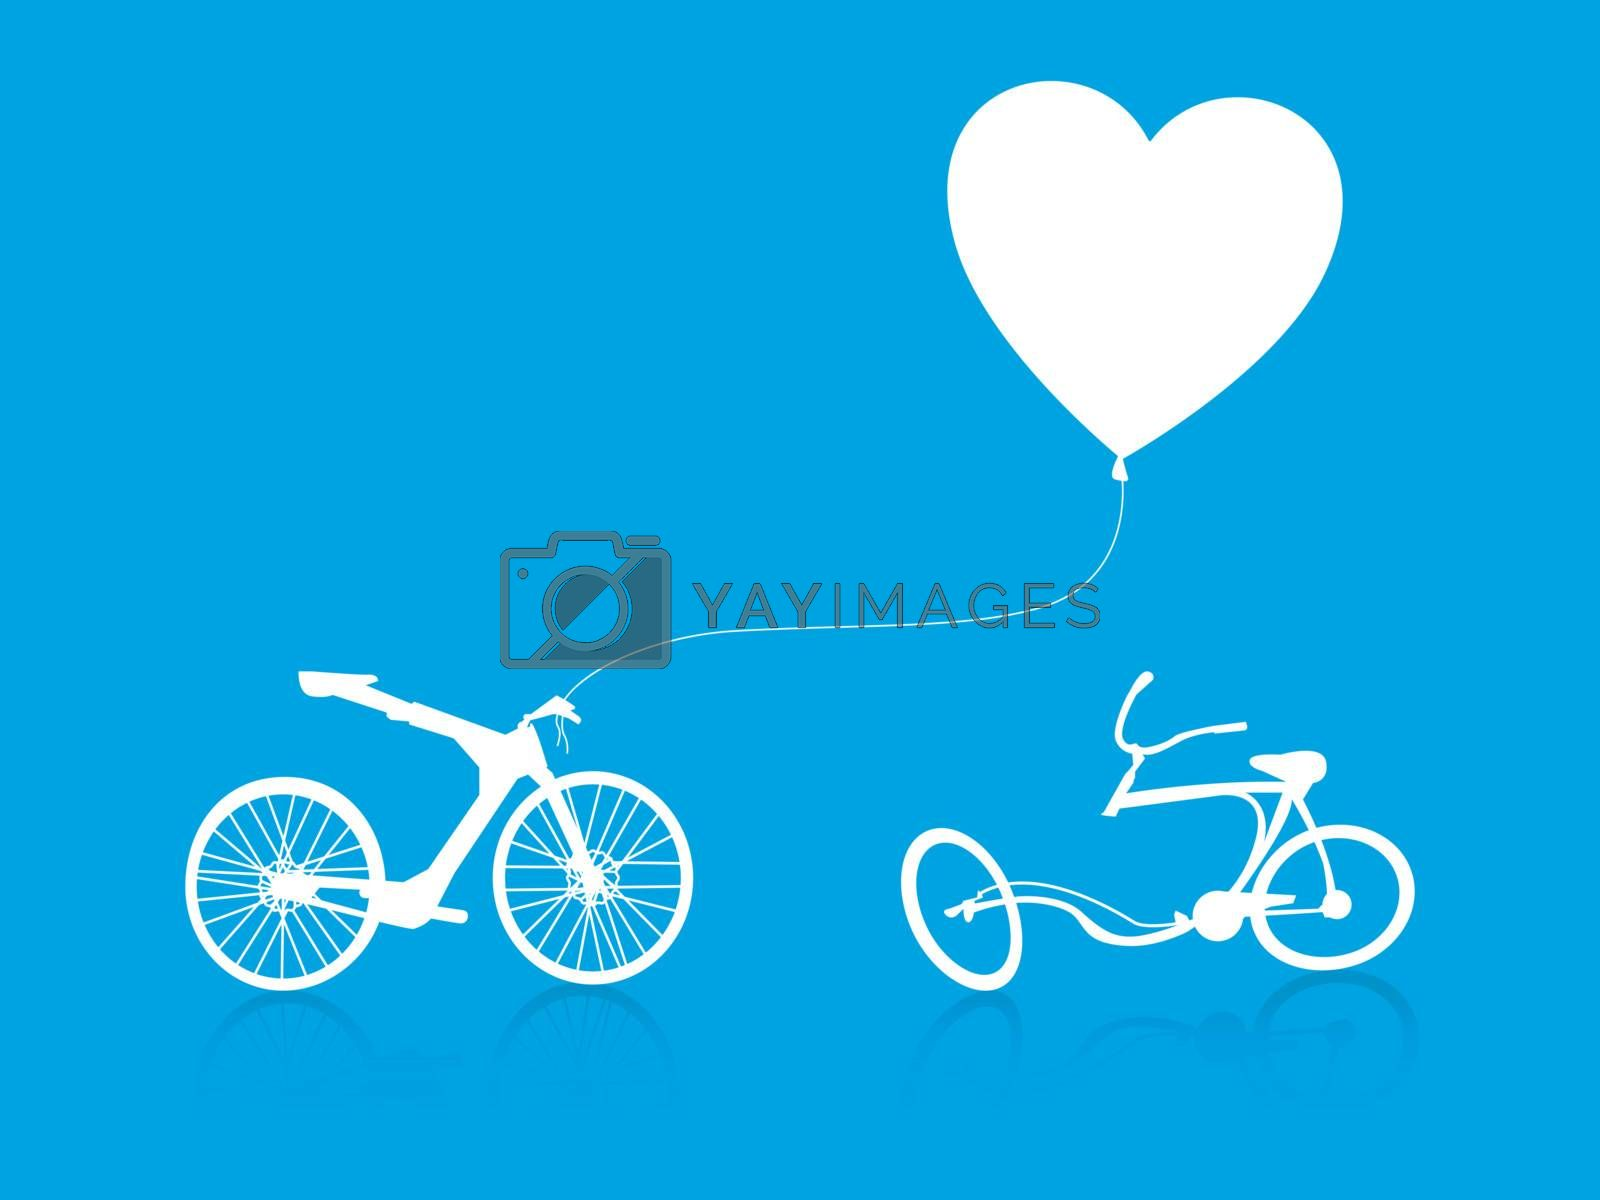 Royalty free image of love modern bike background by nirots